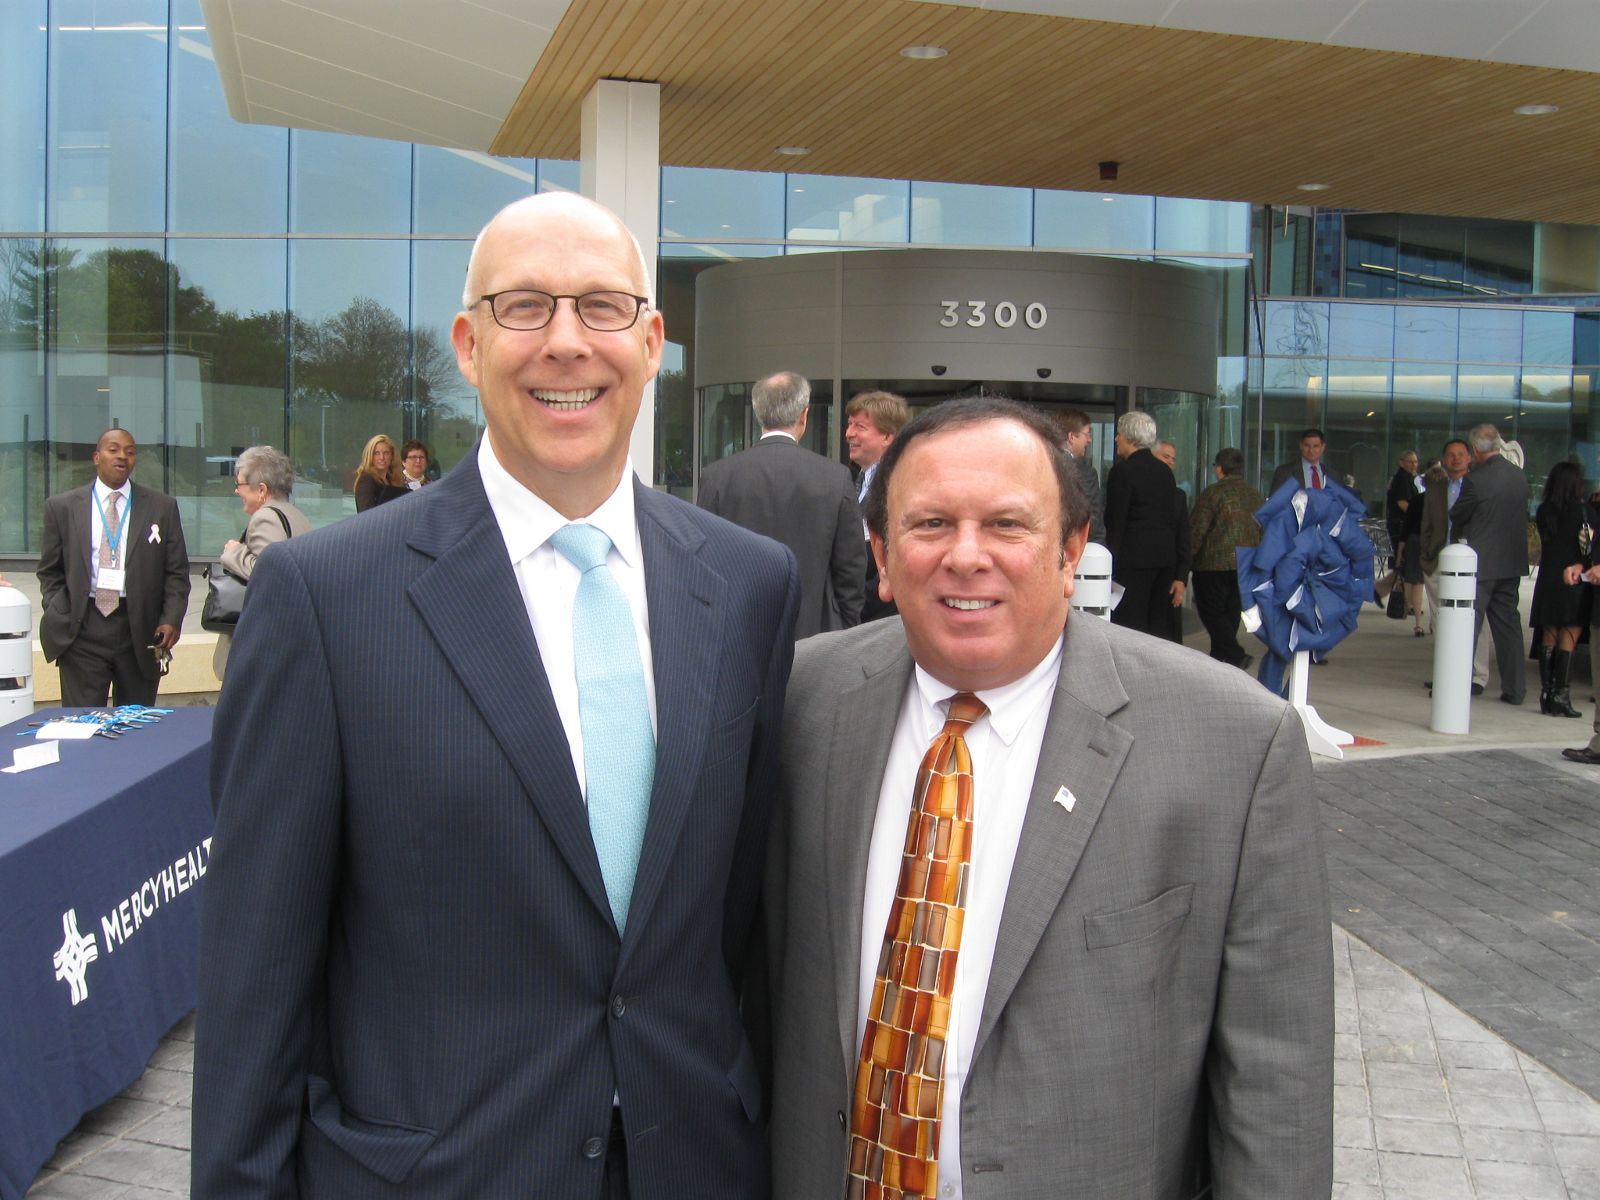 Image of James May, Chief Operating Officer for Catholic Health Partners and Trustee Tony Rosiello attend the tour of the new Mercy Health - West Hospital